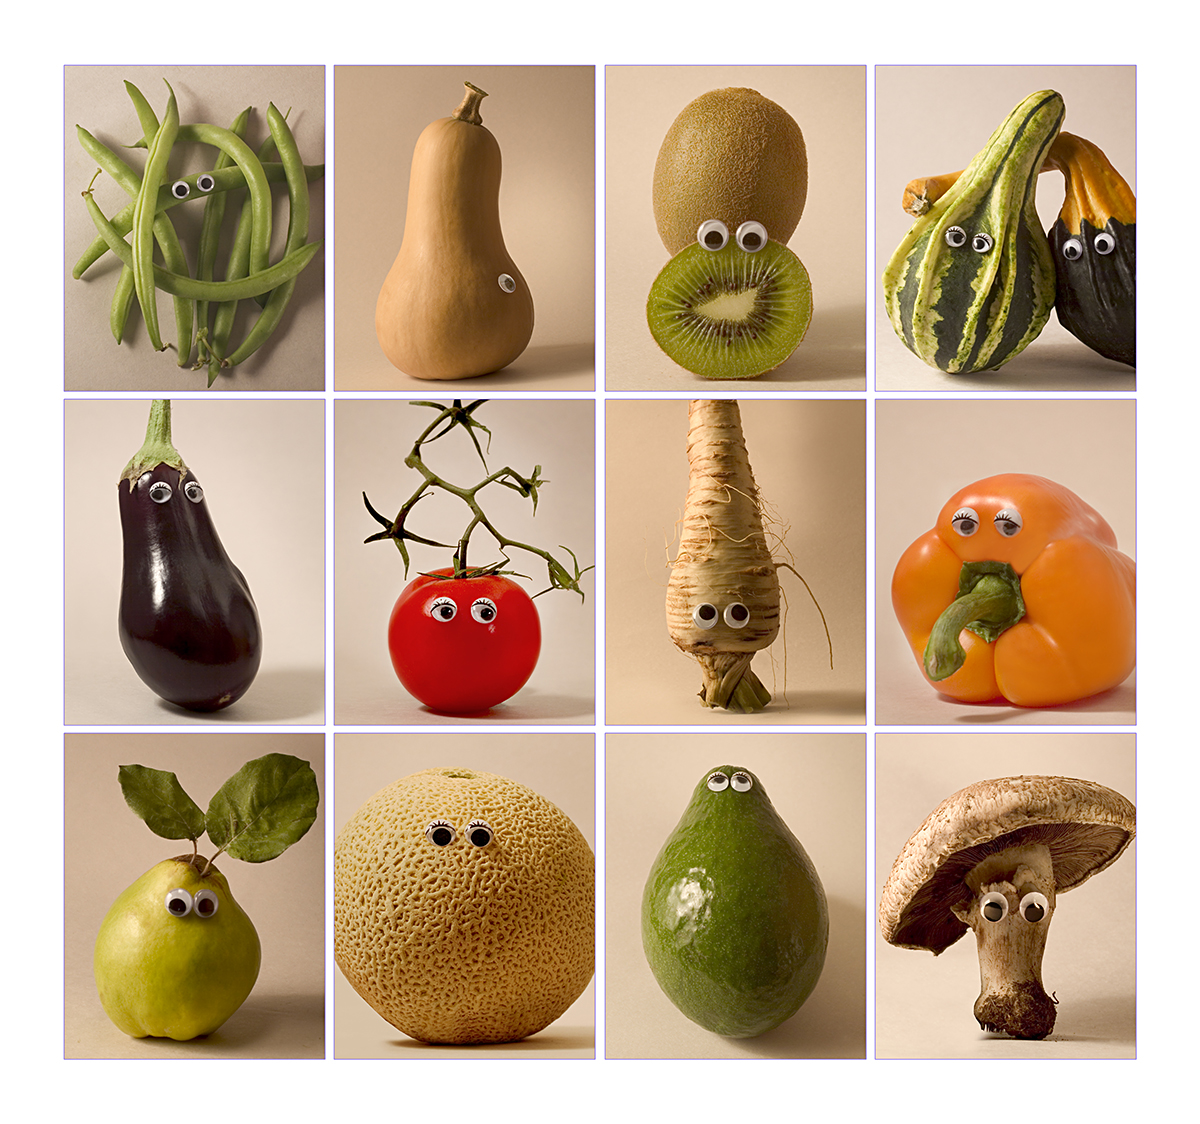 fruits & vegetables with toy eyes